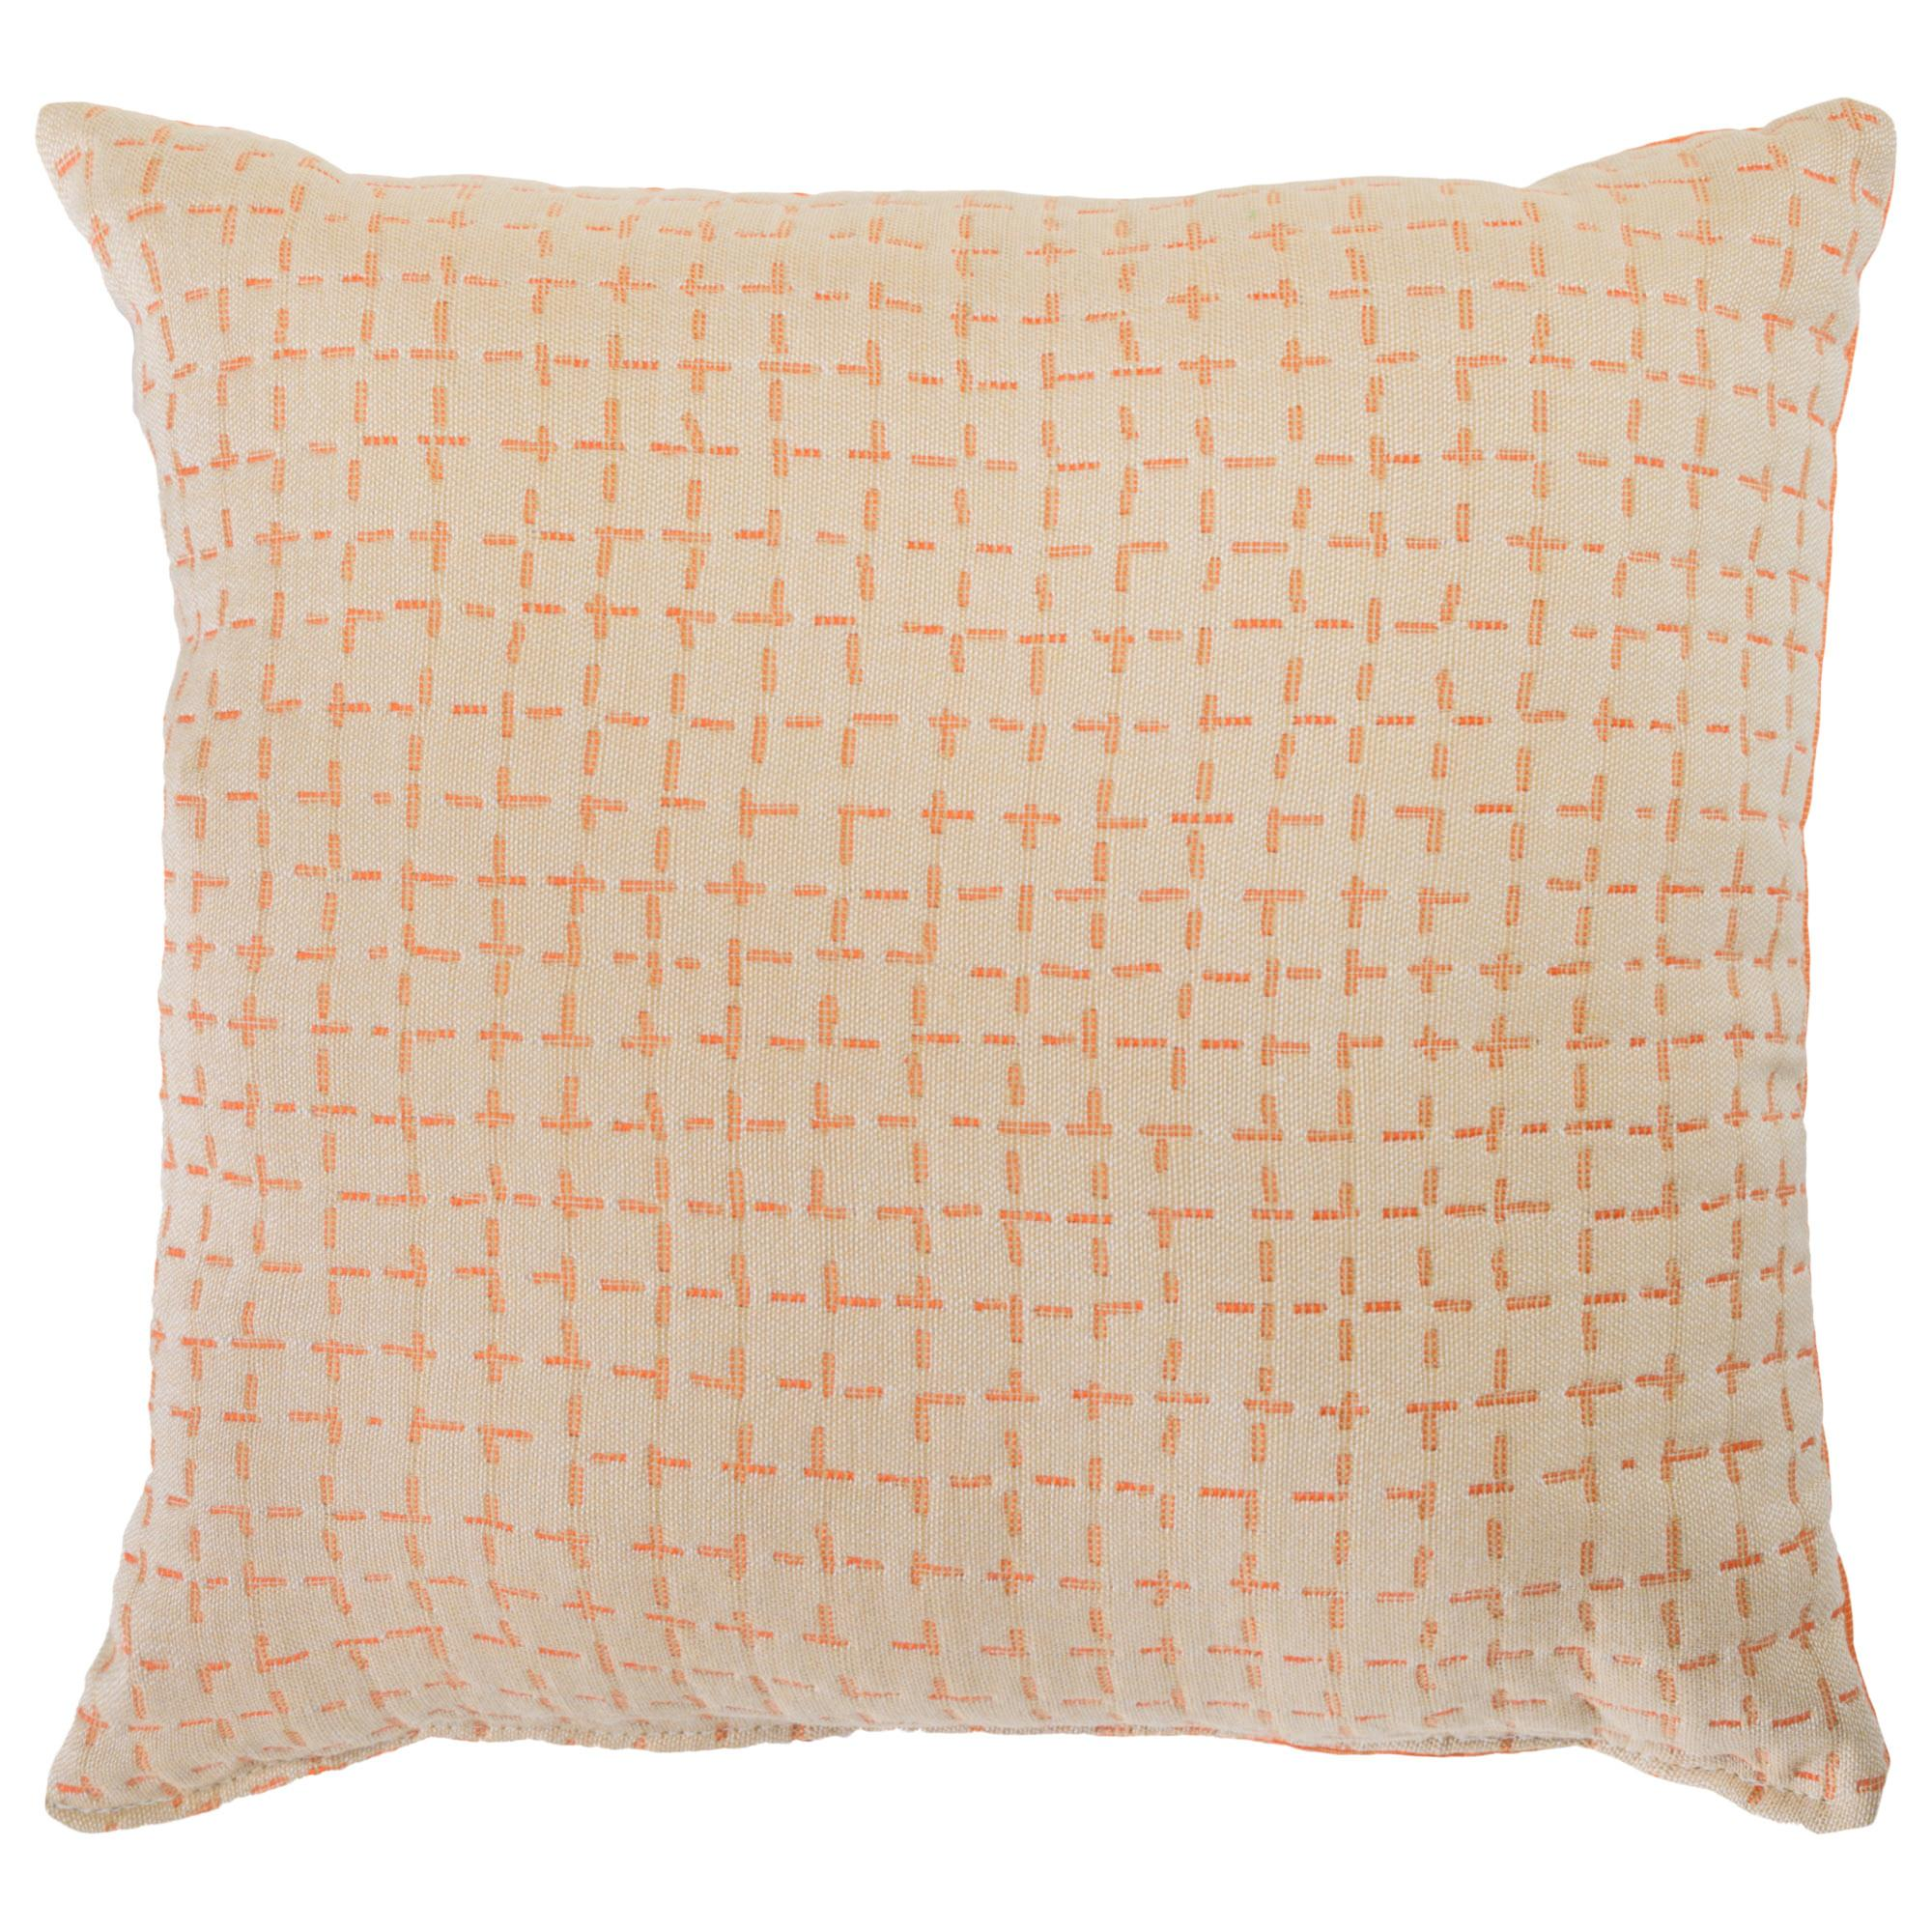 navy blue sofa decorative click covers pink enlarge and pillow pillows throw here gold to